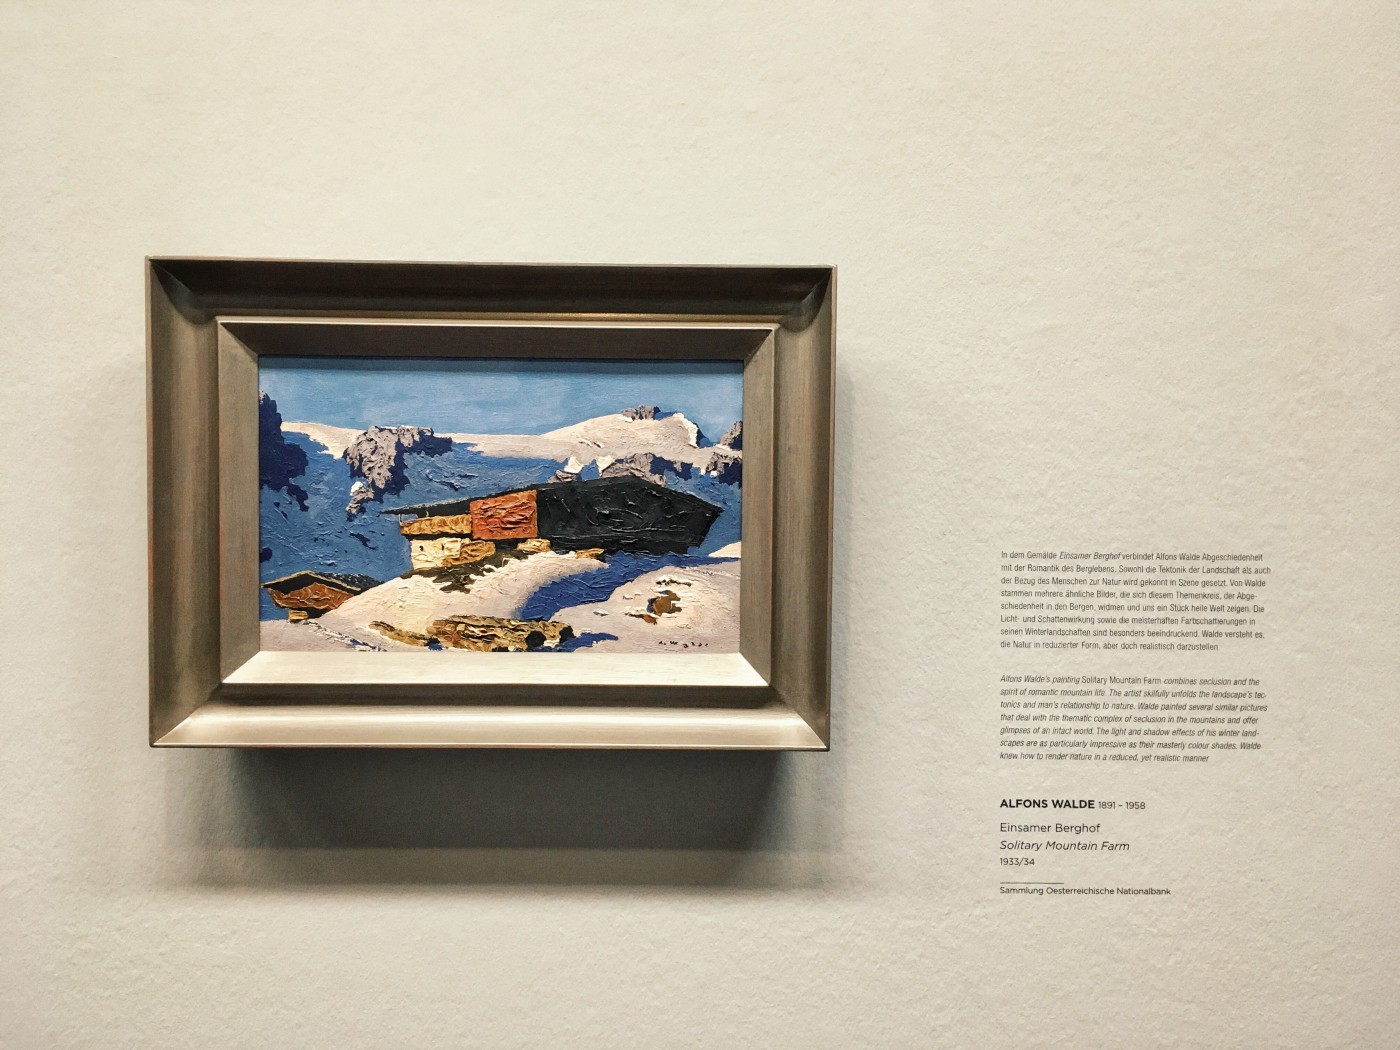 The art painting presenting home in mountains in the winter on the museum wall. On the right side of the picture there is a long description about the image.